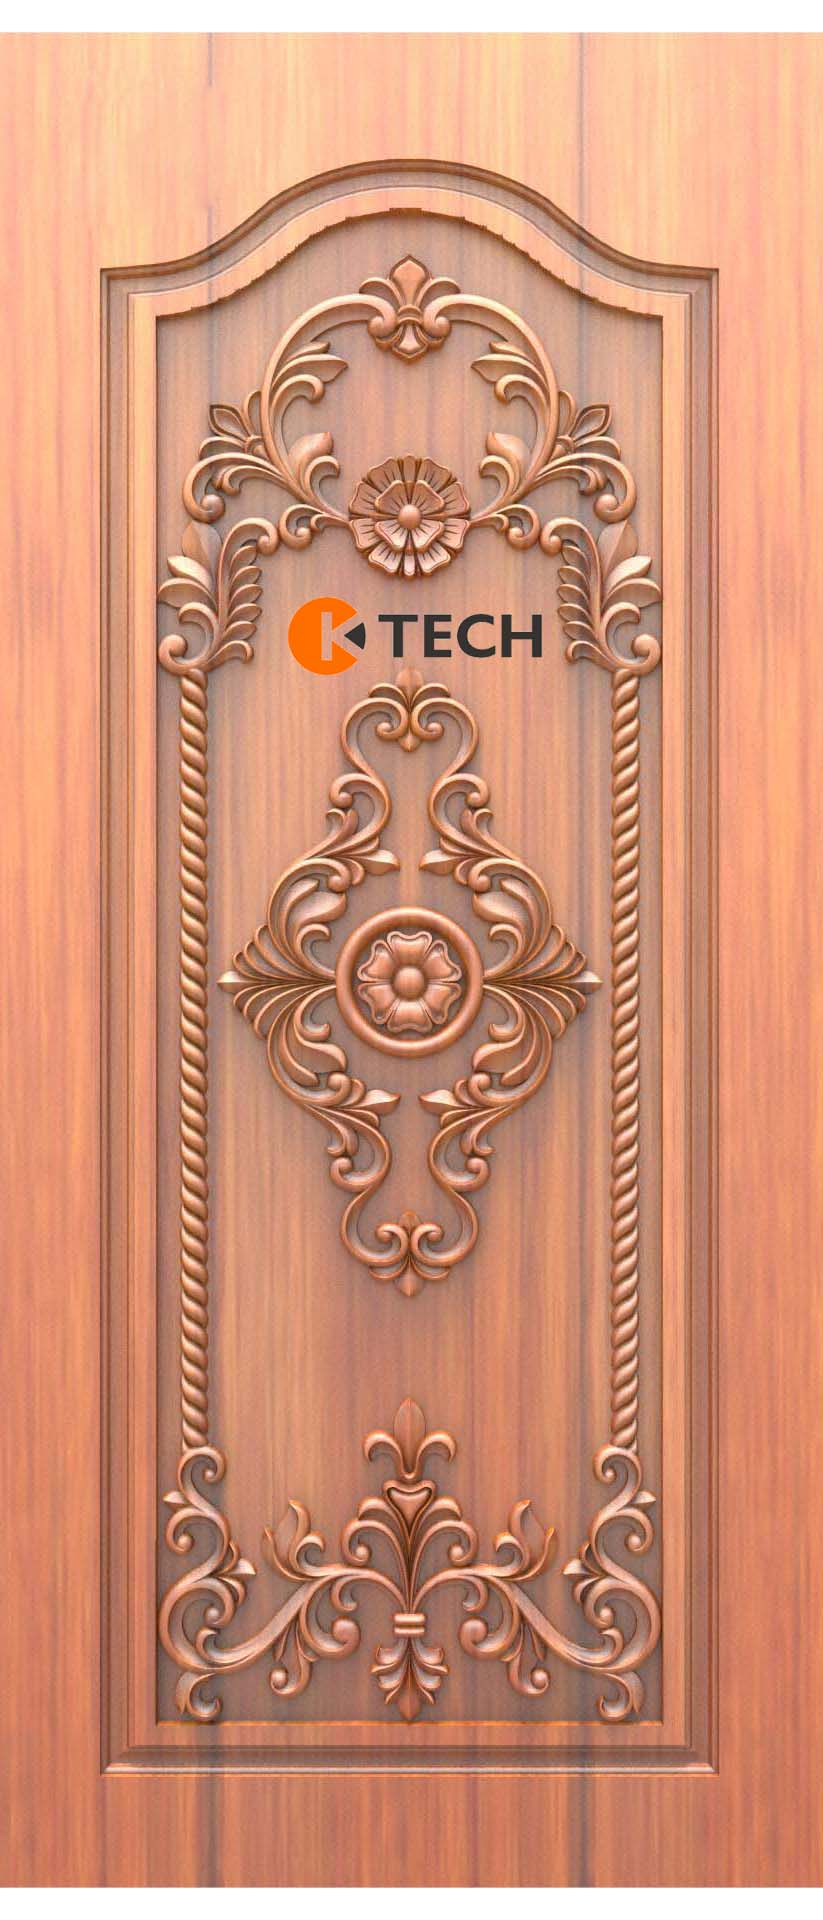 K-TECH CNC Doors Design 175